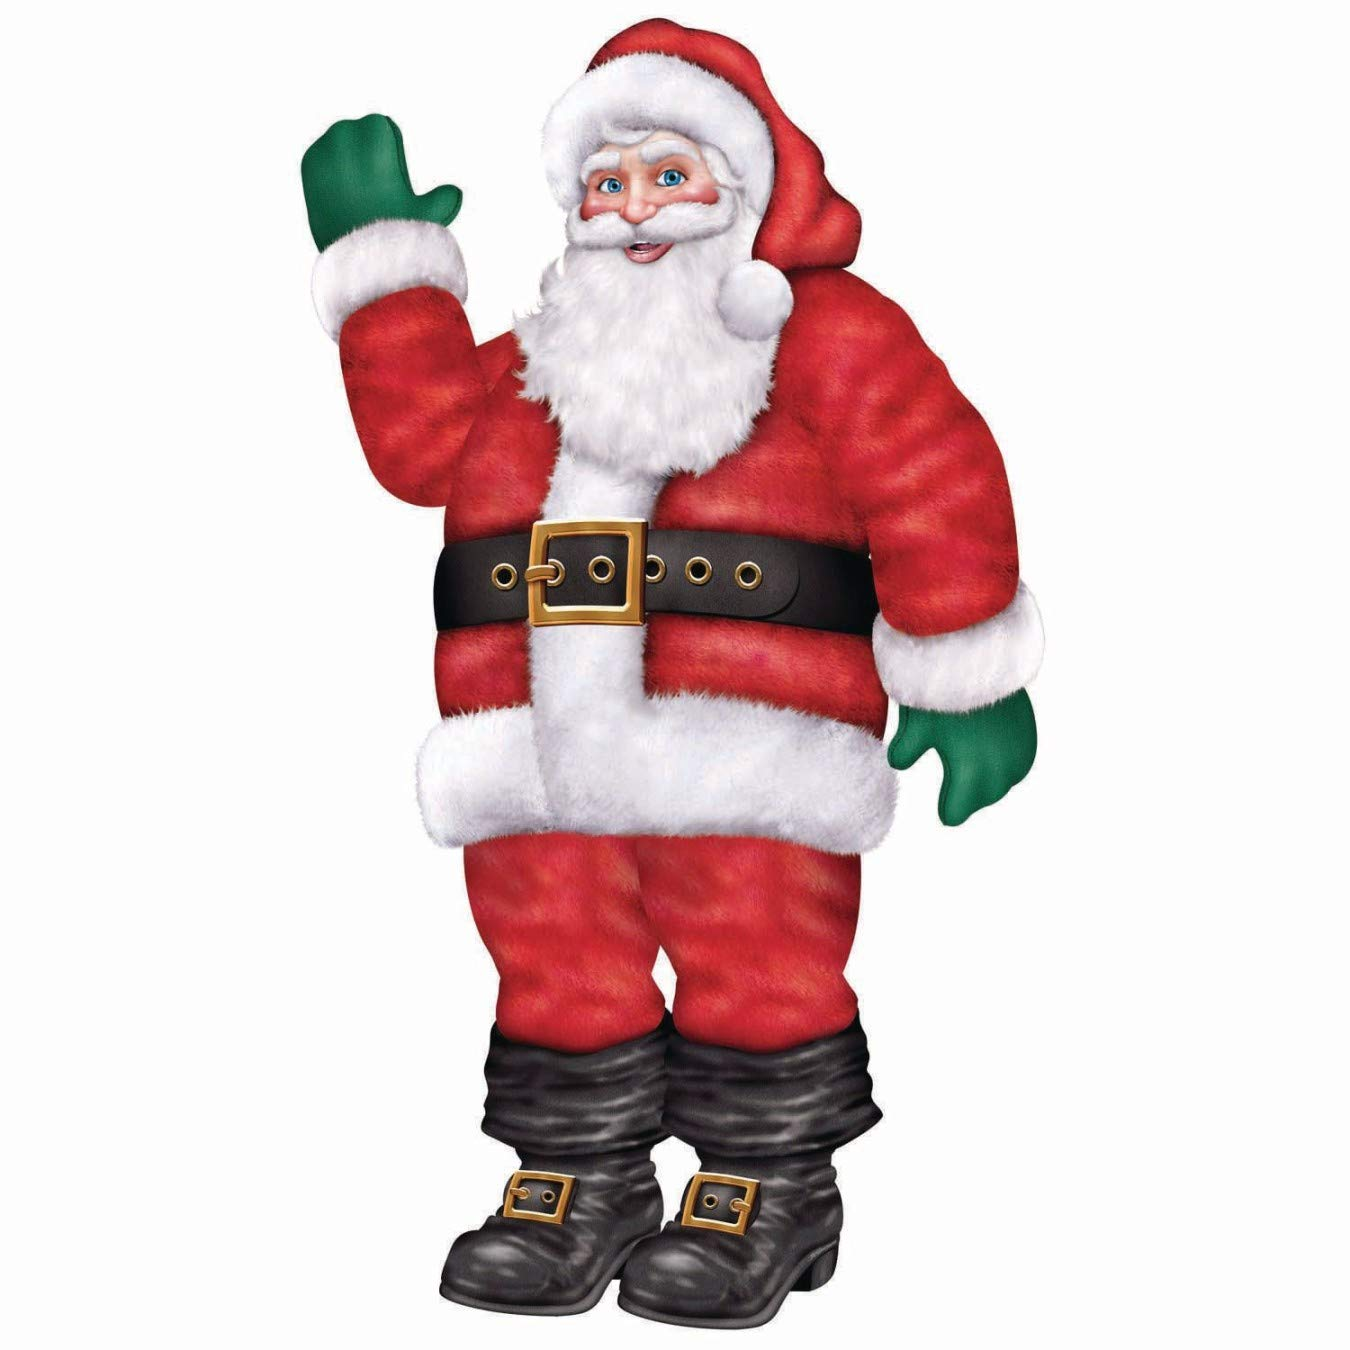 Jointed Santa Party Accessory (1 count) (1/Pkg) by Beistle